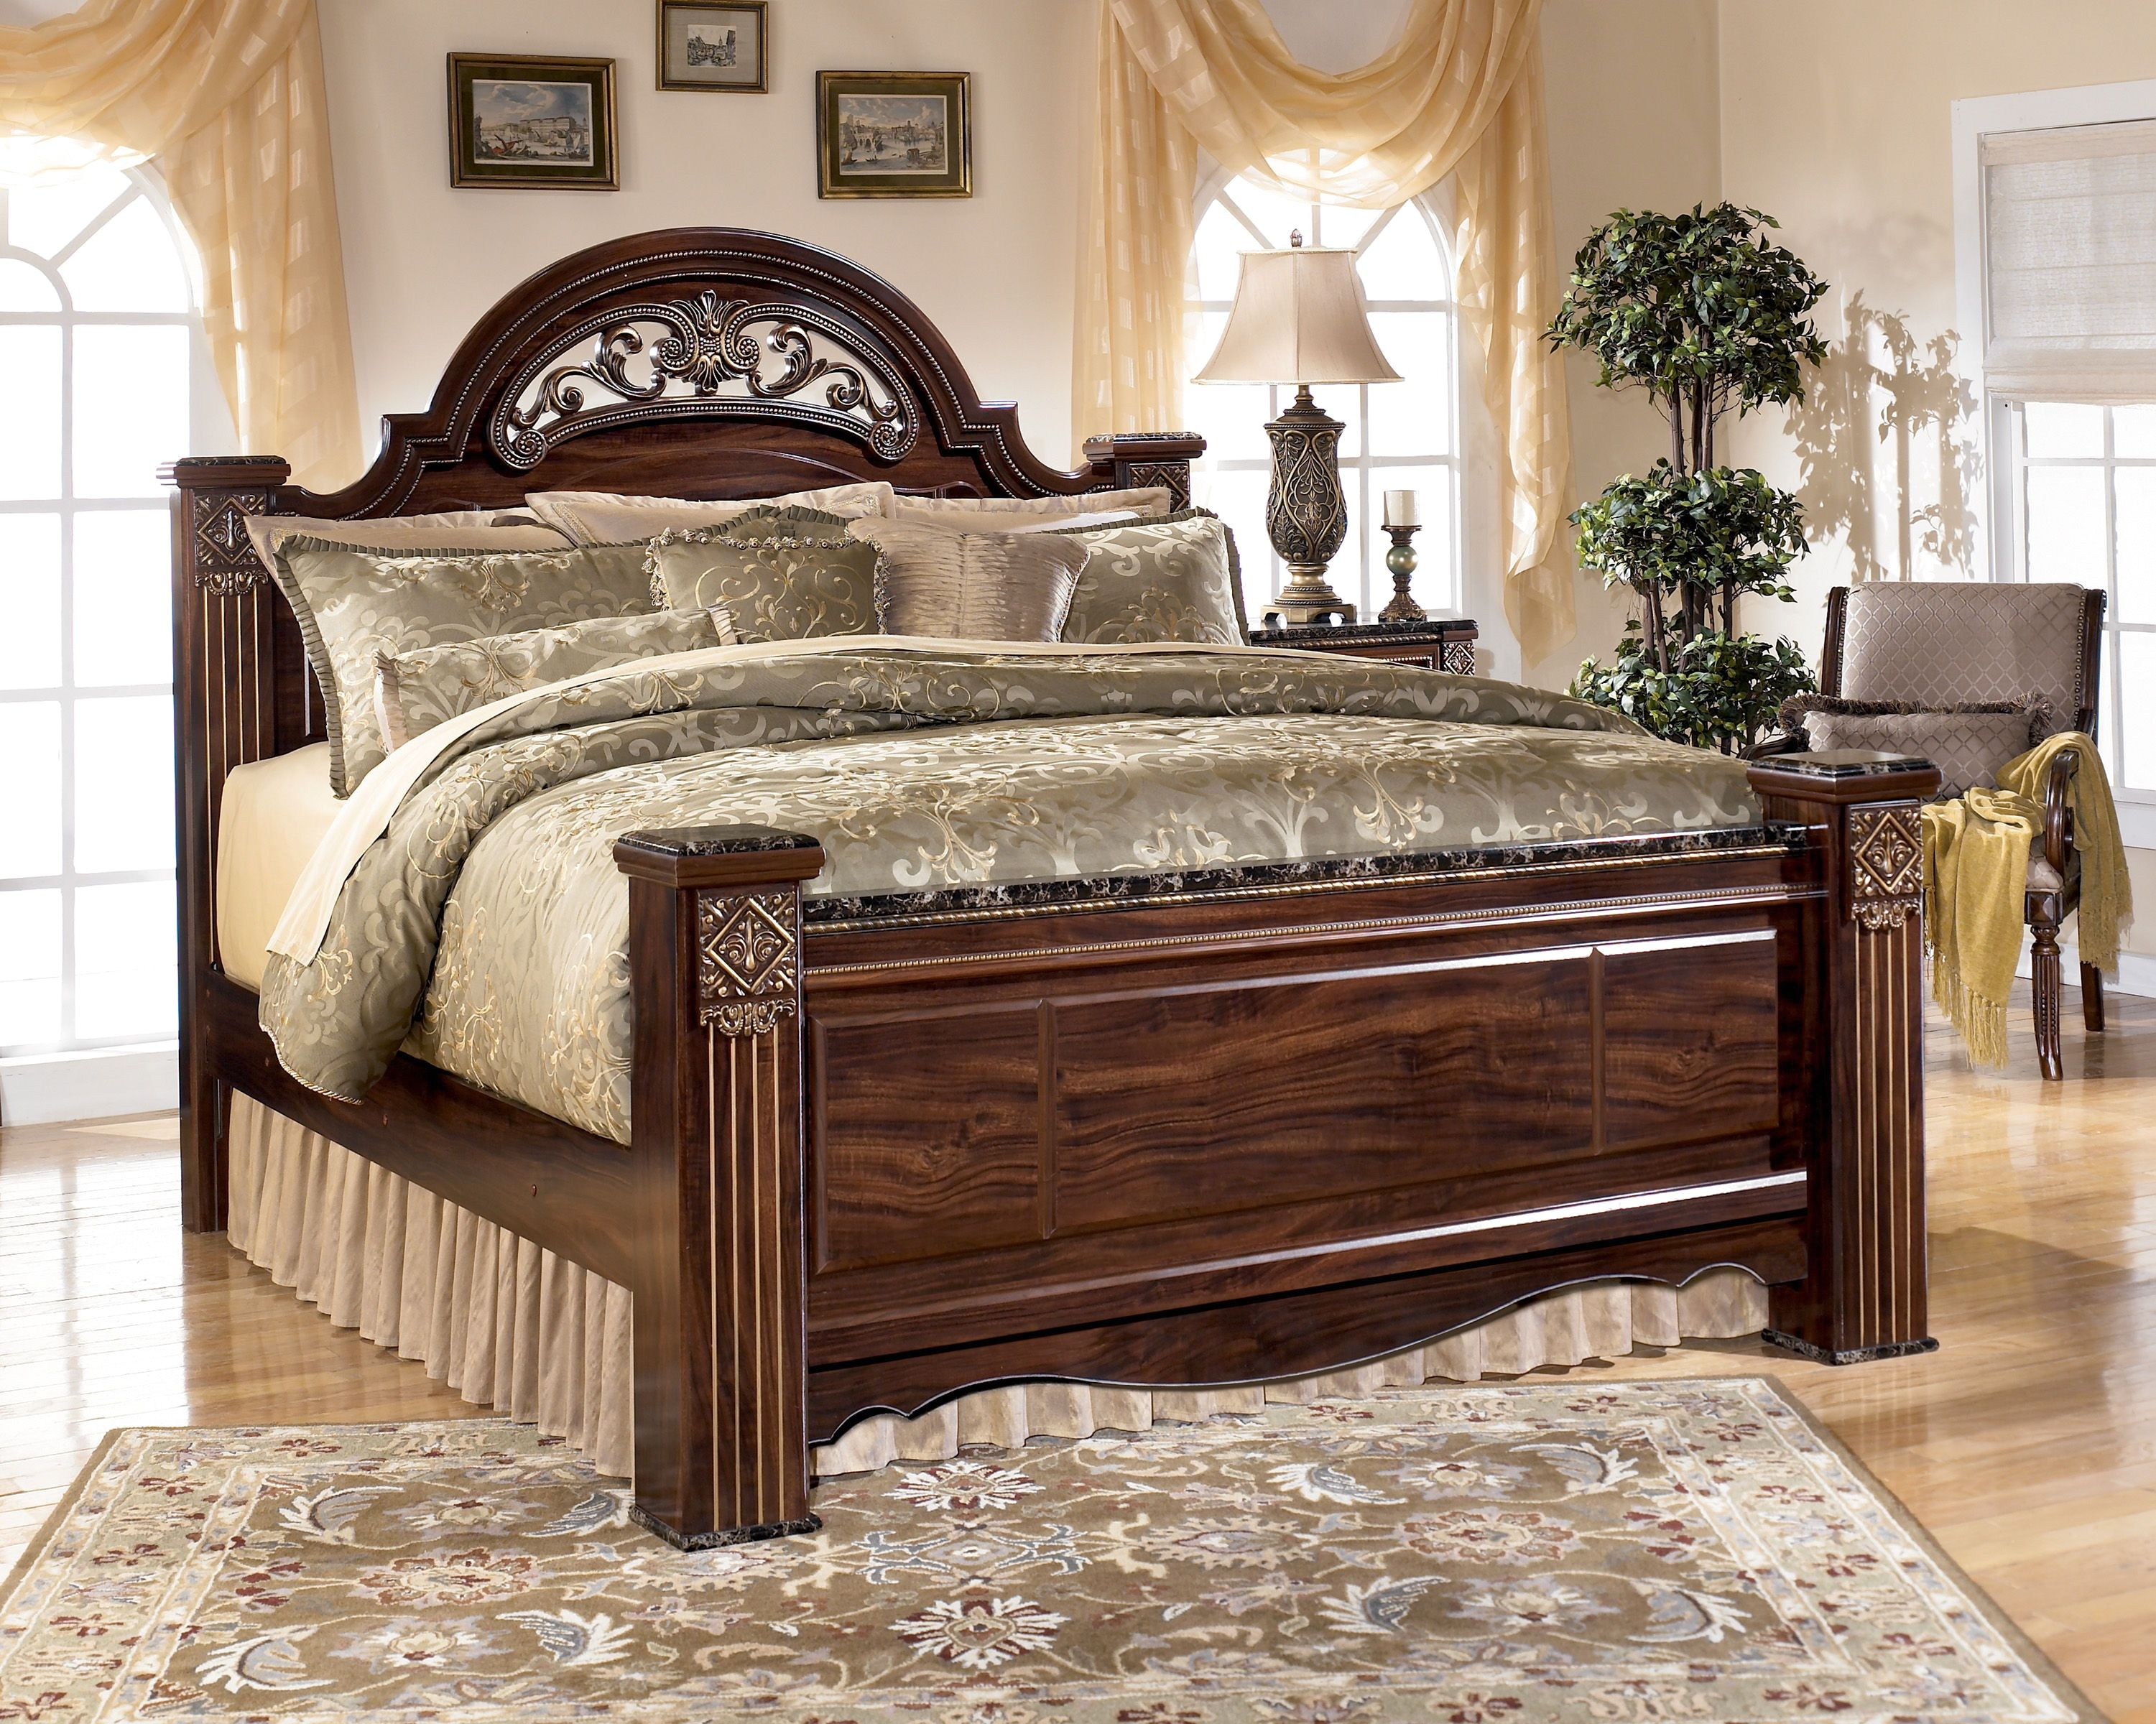 Craigslist Furniture For Sale By Owner Browse the most recent dayton, ohio obituaries and condolences. static cpplus jp